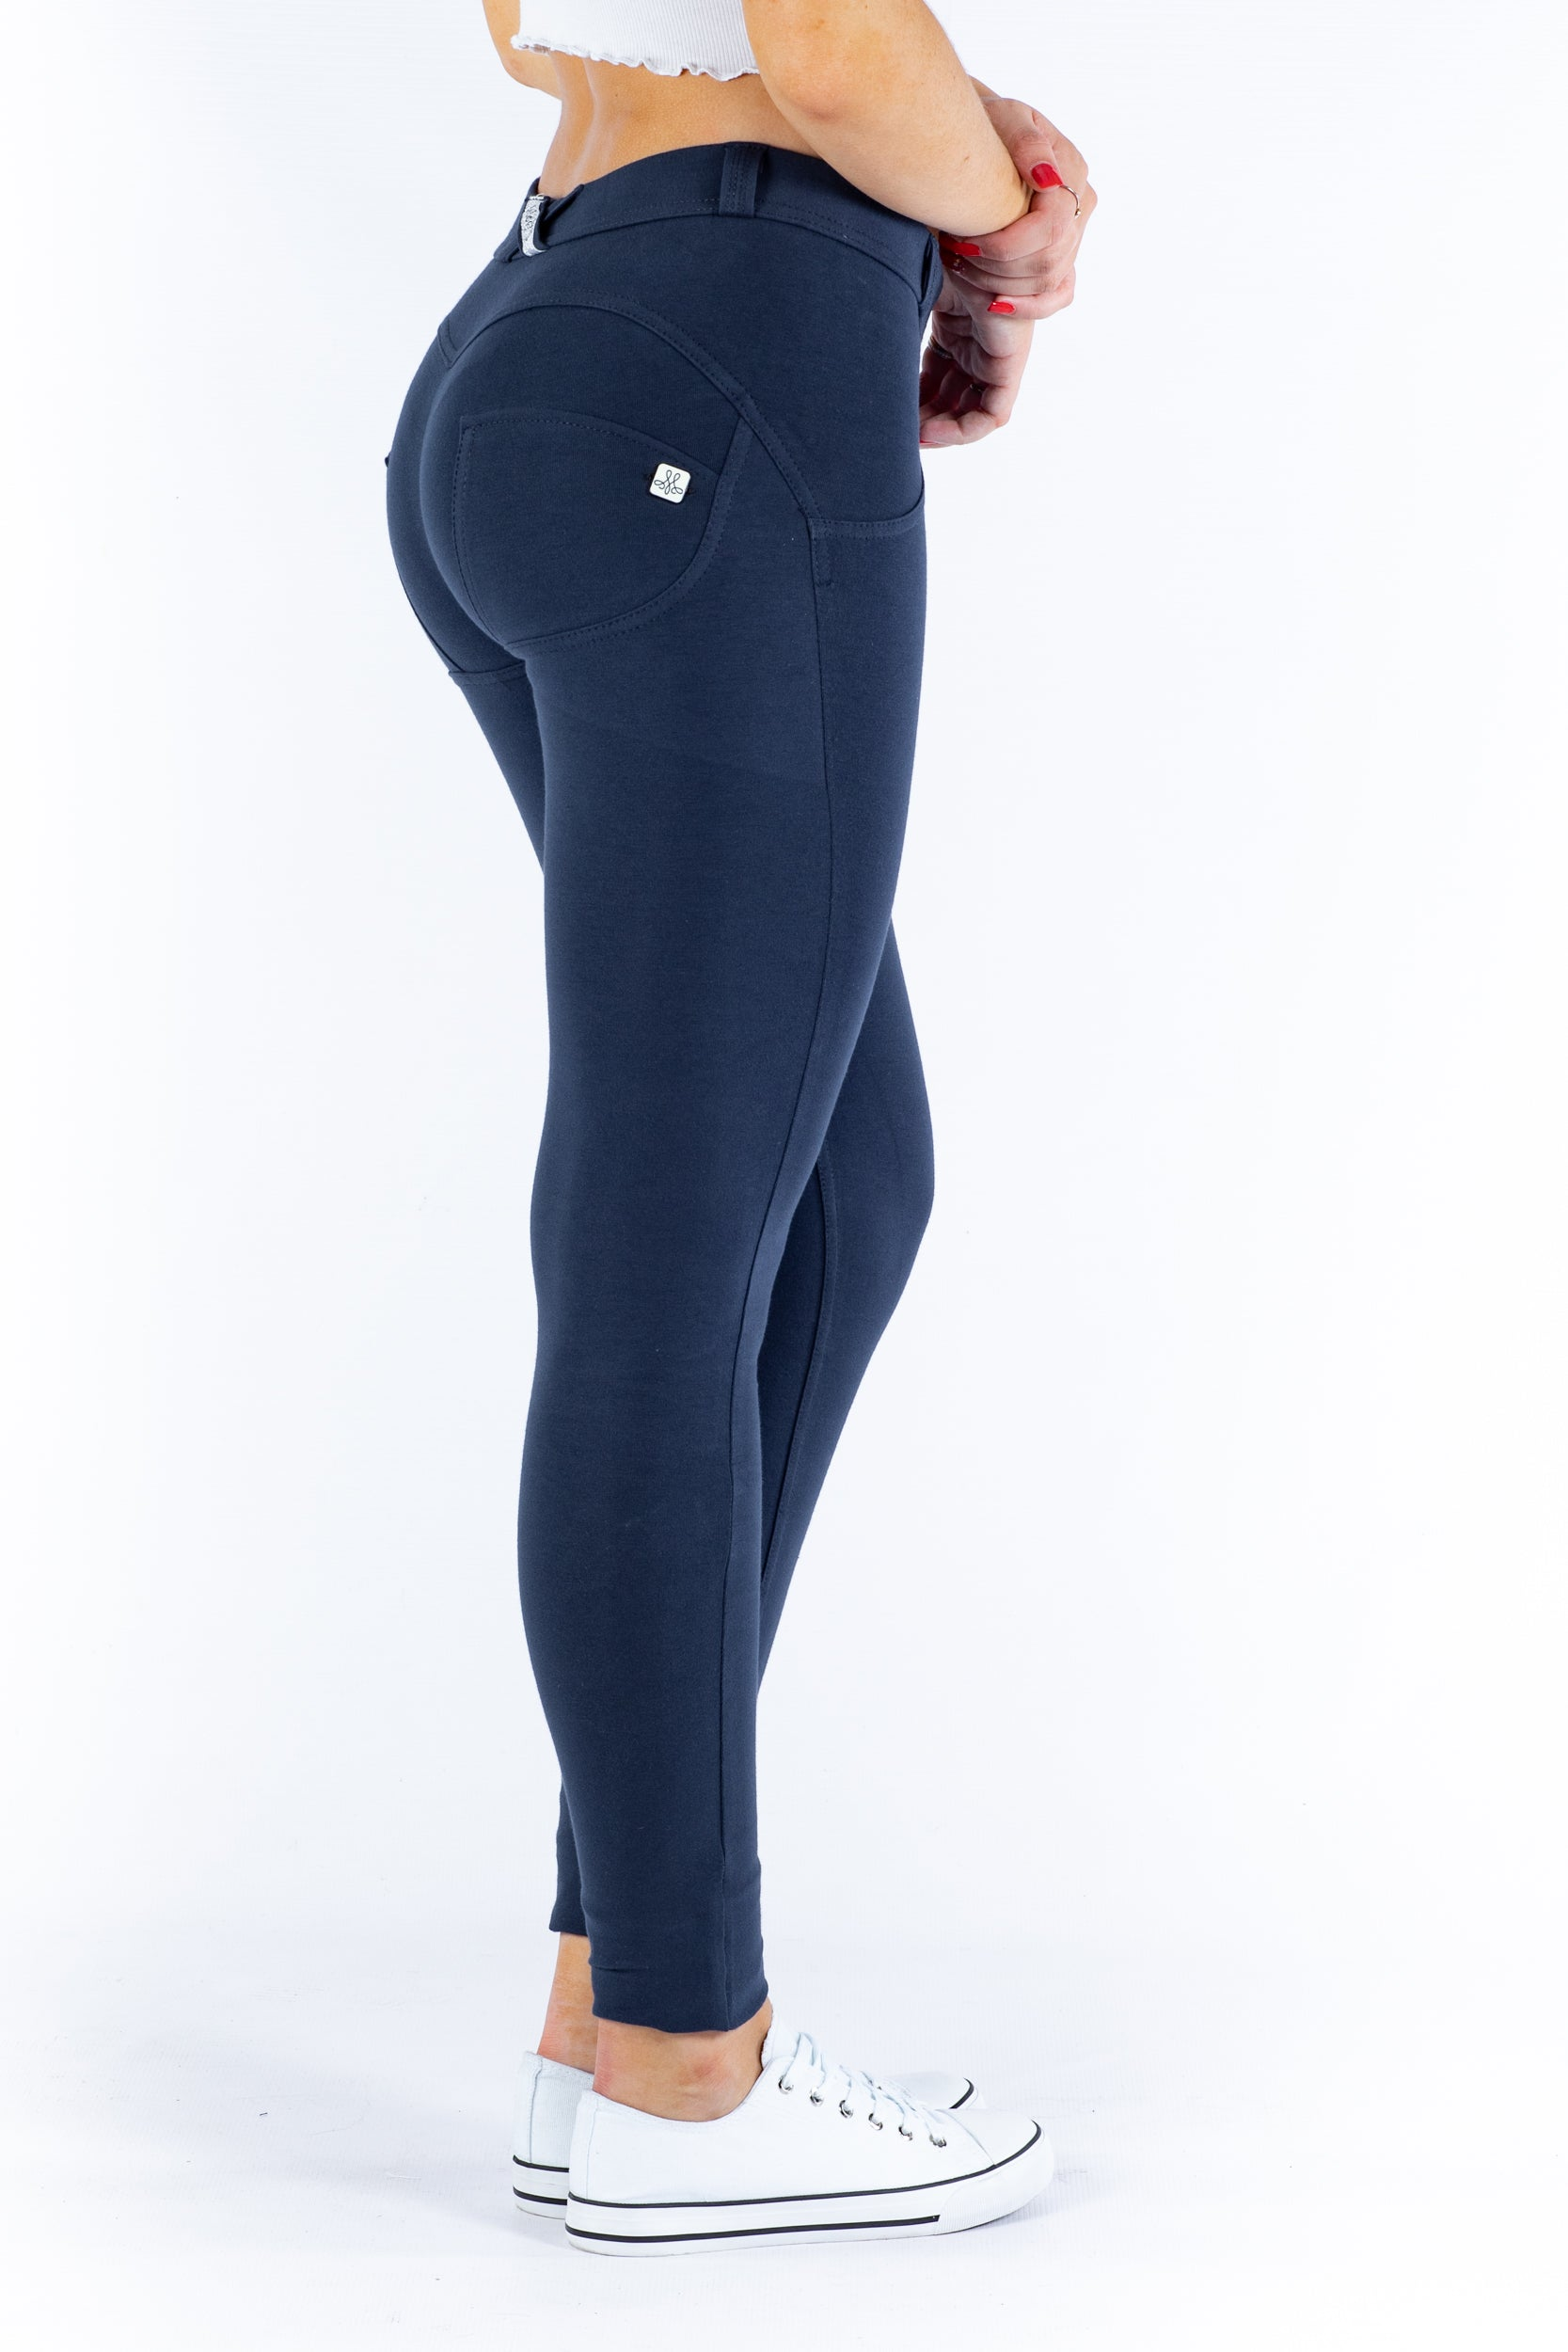 Image of Butt lifting Jeggings - Navy Blue